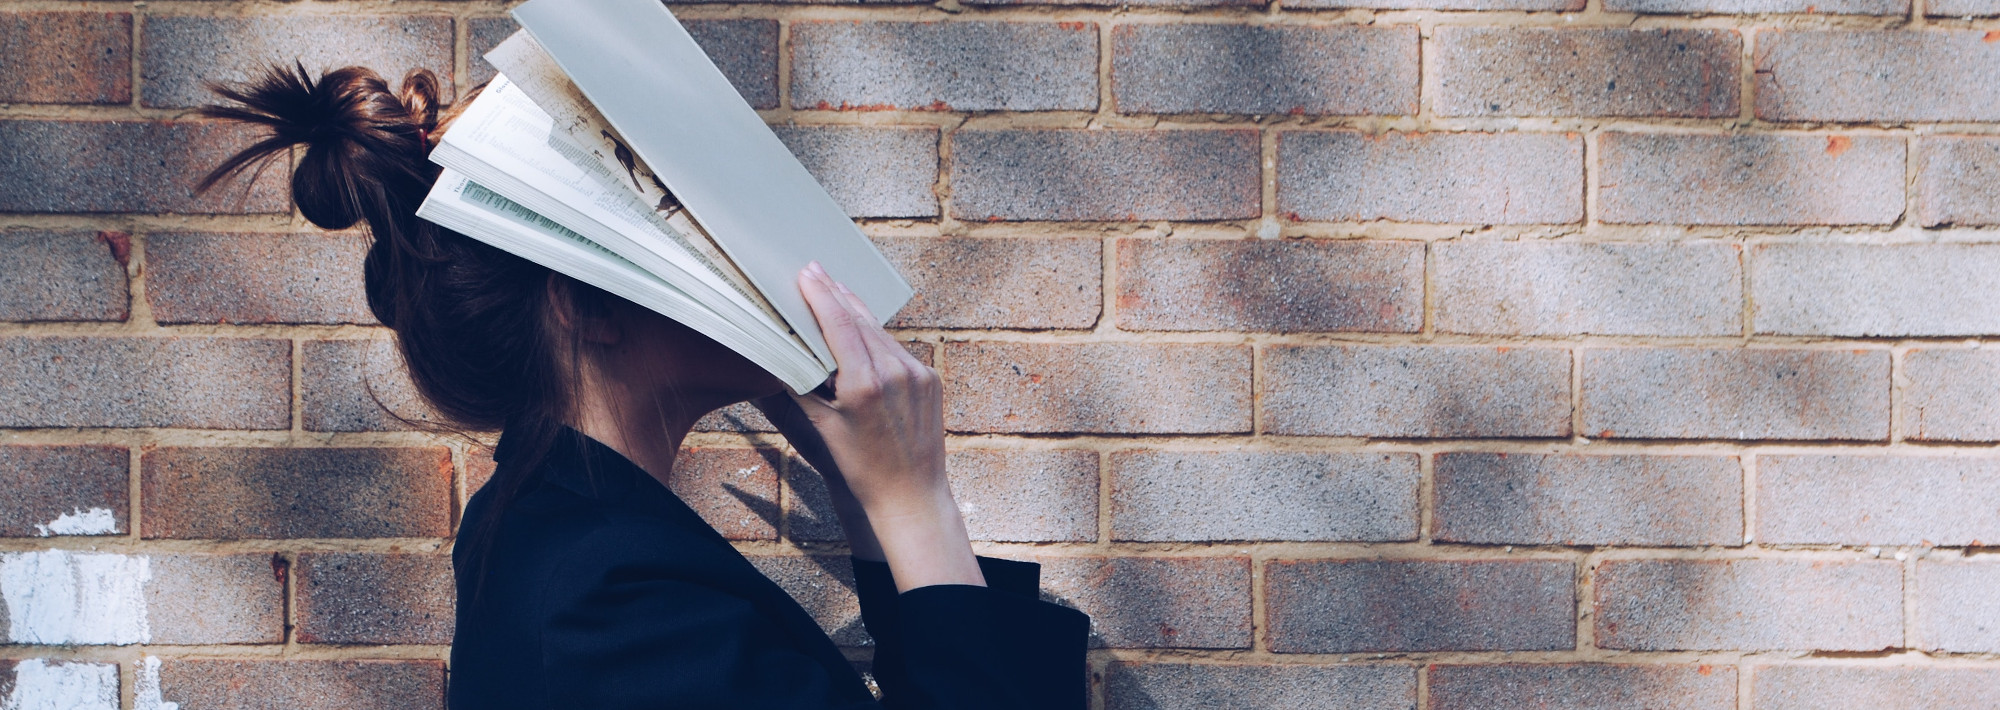 A student with a book covering their face out of frustration